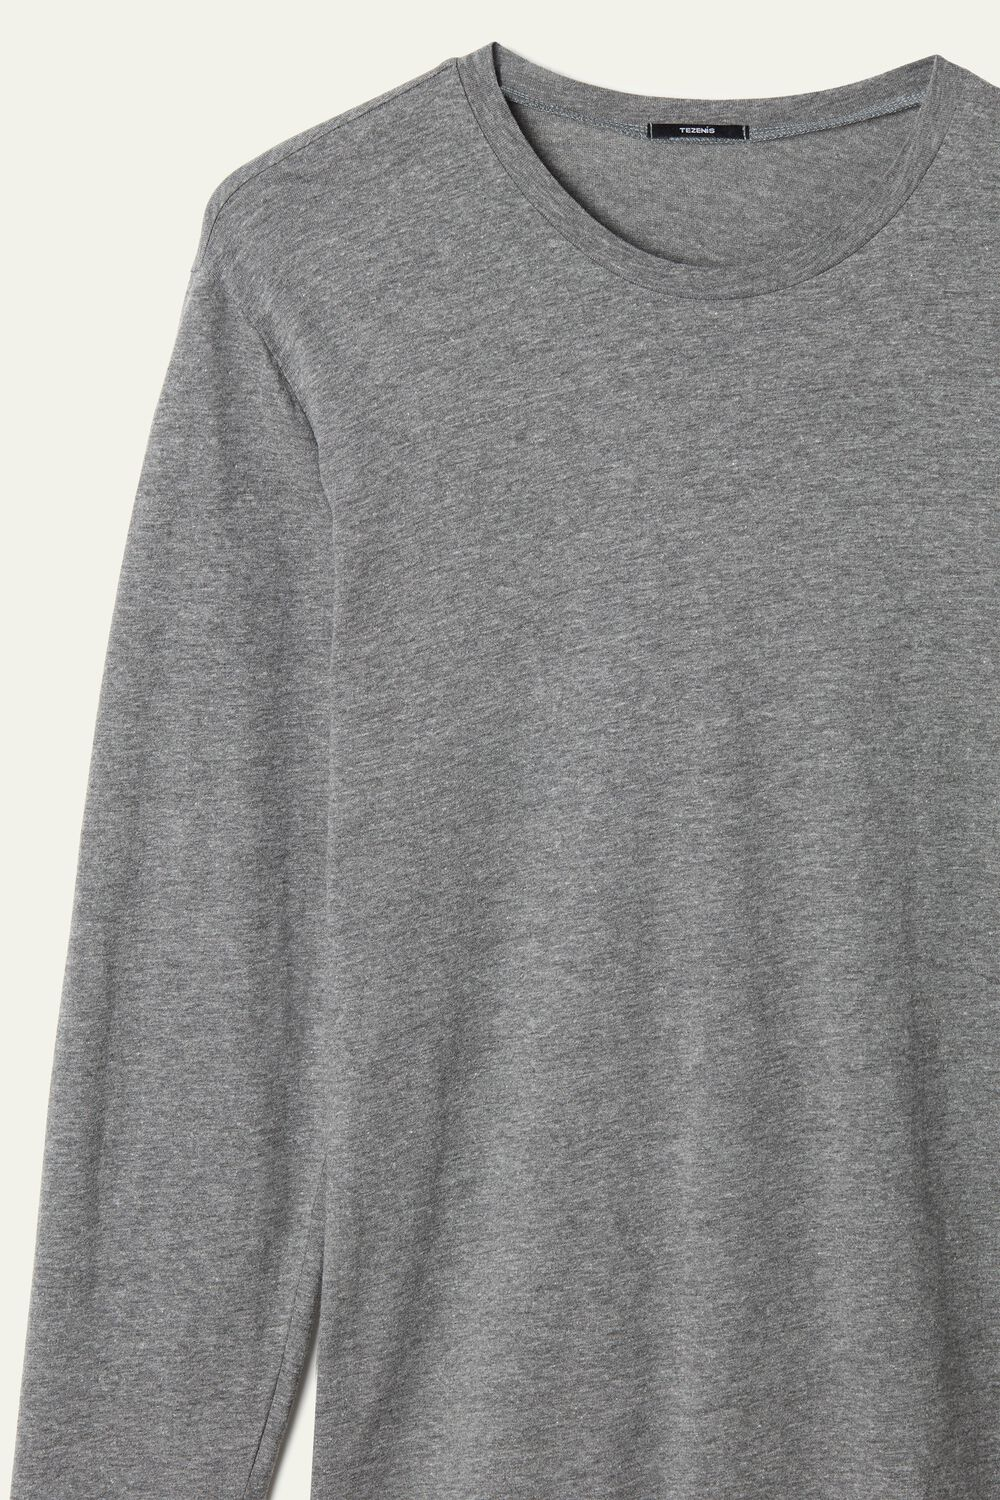 Long Sleeve Cotton Top